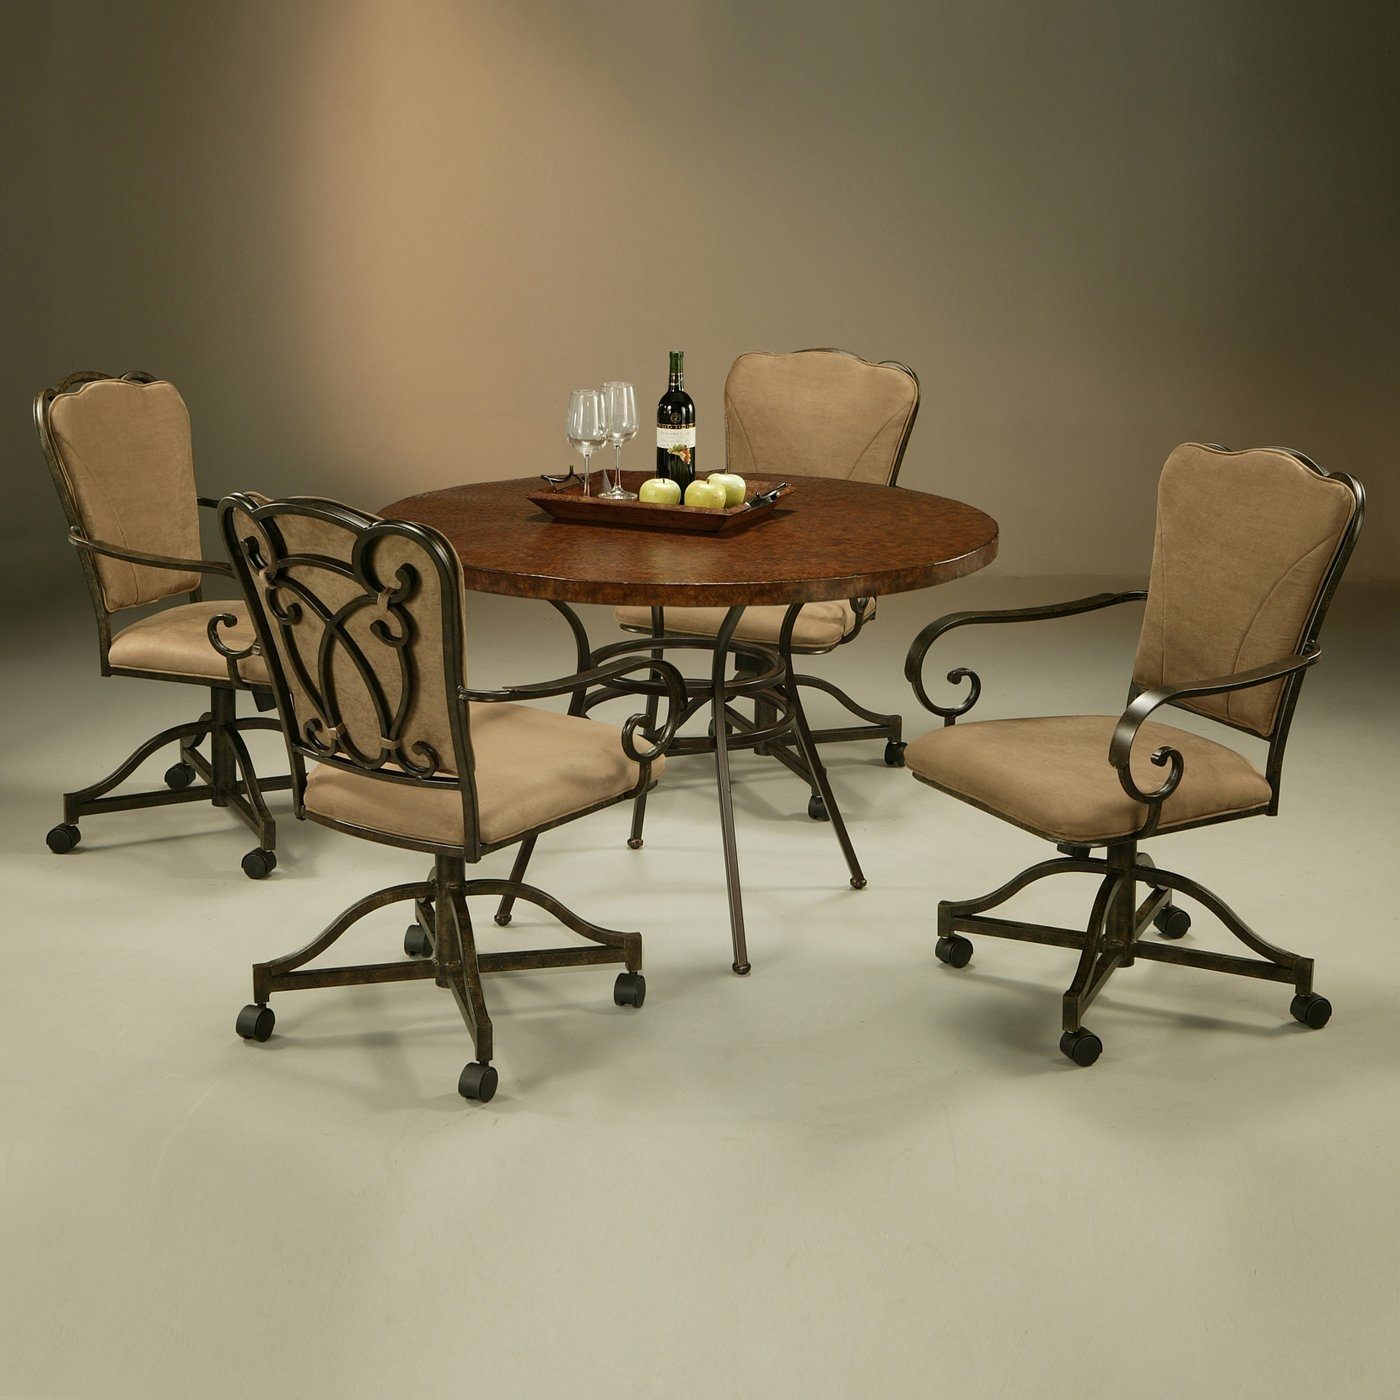 Kitchen Table With Chairs On Wheels: Dinette Sets With Caster Chairs